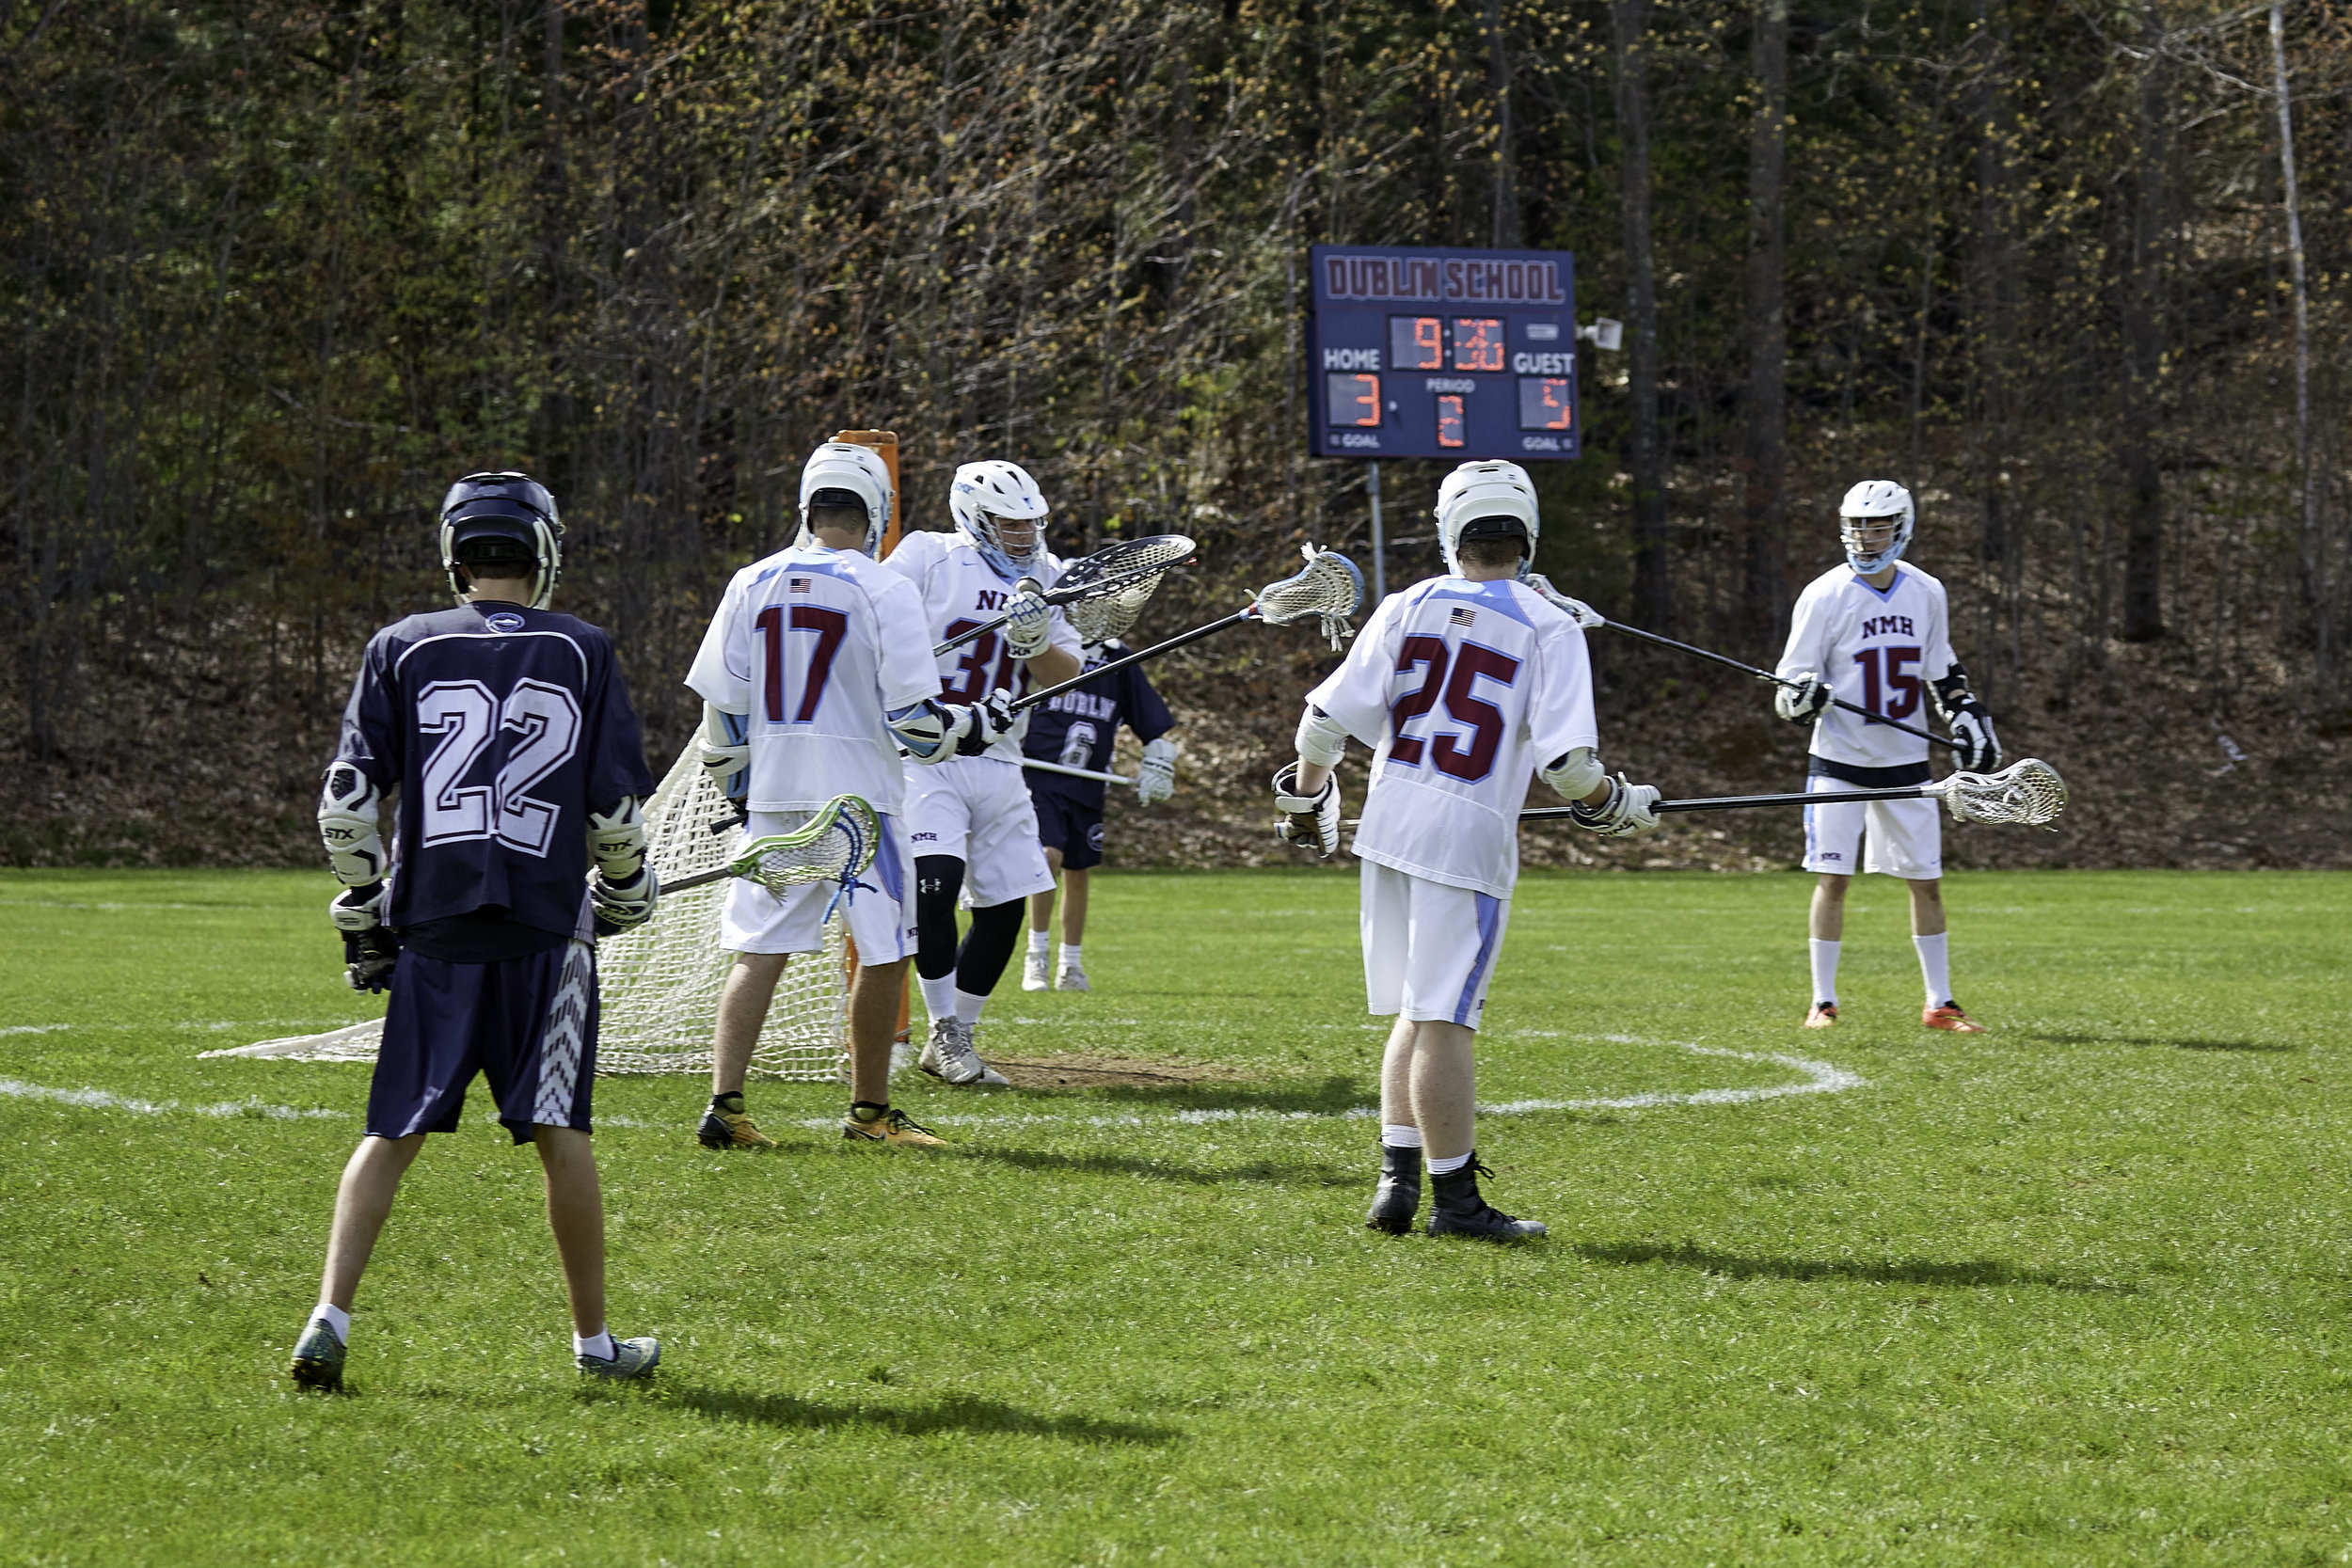 Boys Lax vs Northfield Mount Hermon JV - May 15 2019 - 0023.jpg